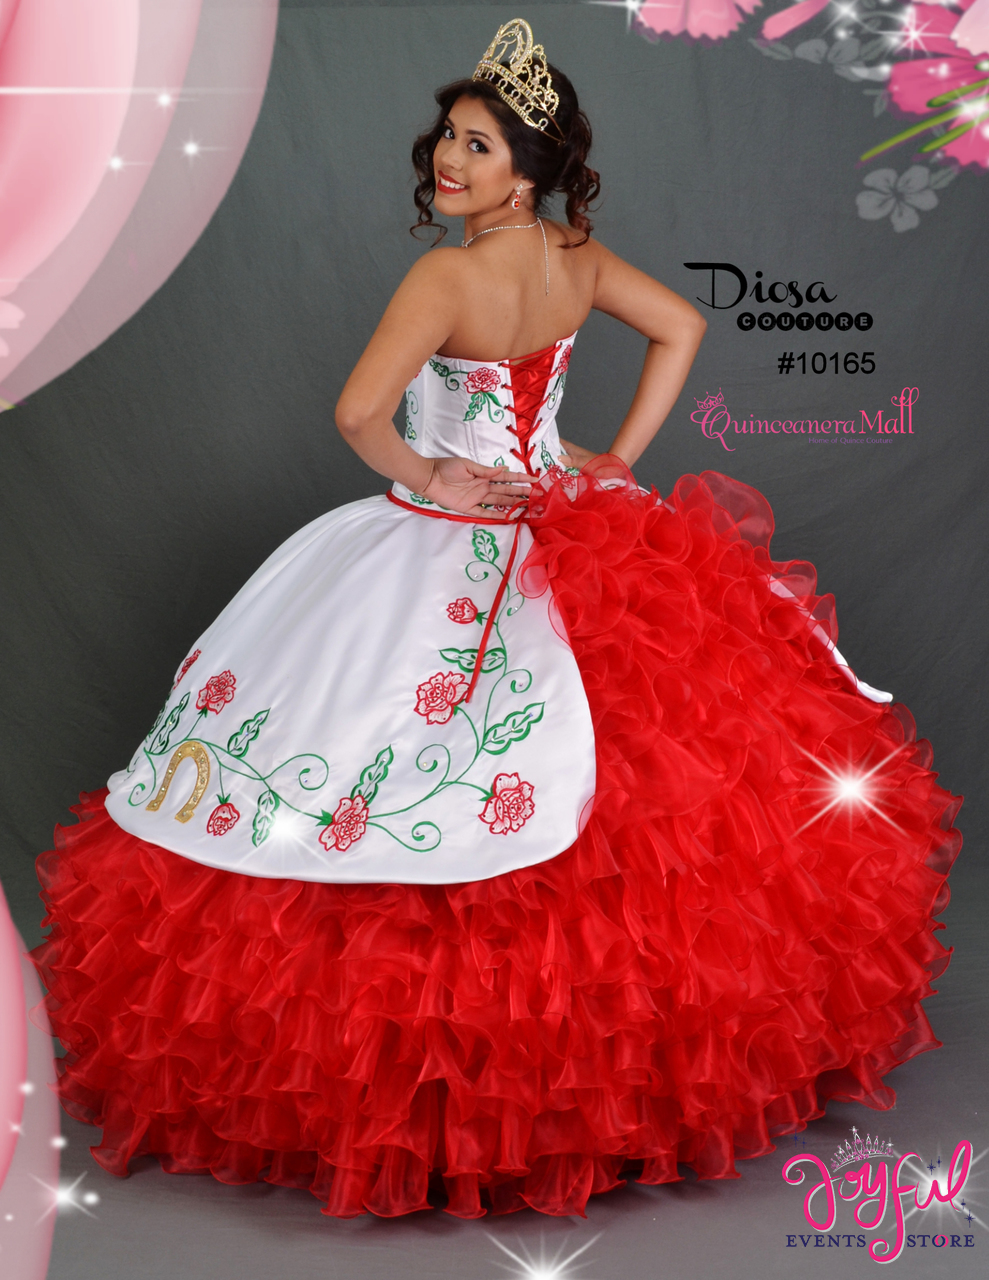 6f4a2153e5c Charra Dress with Red Roses  10165 - Joyful Events Store